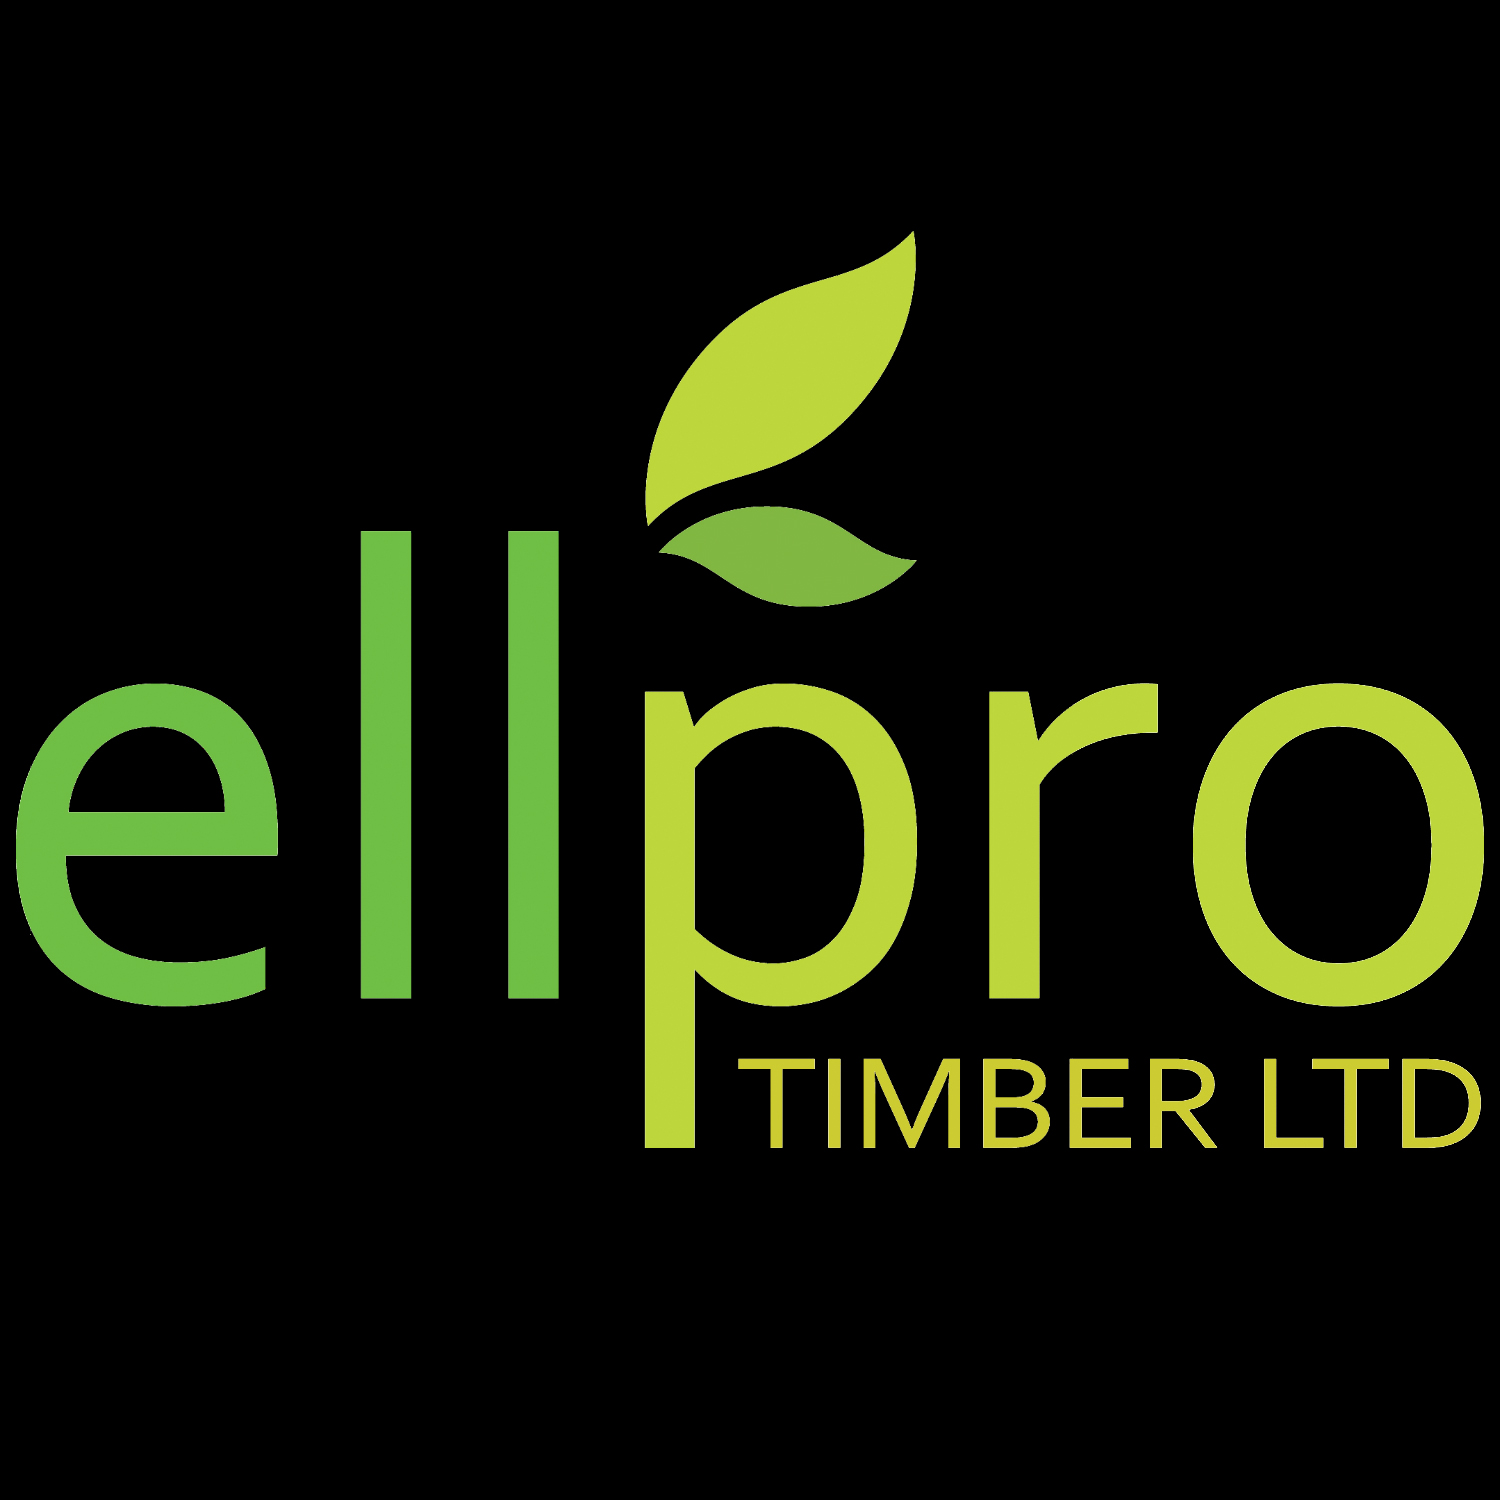 Ellpro Timber Ltd.